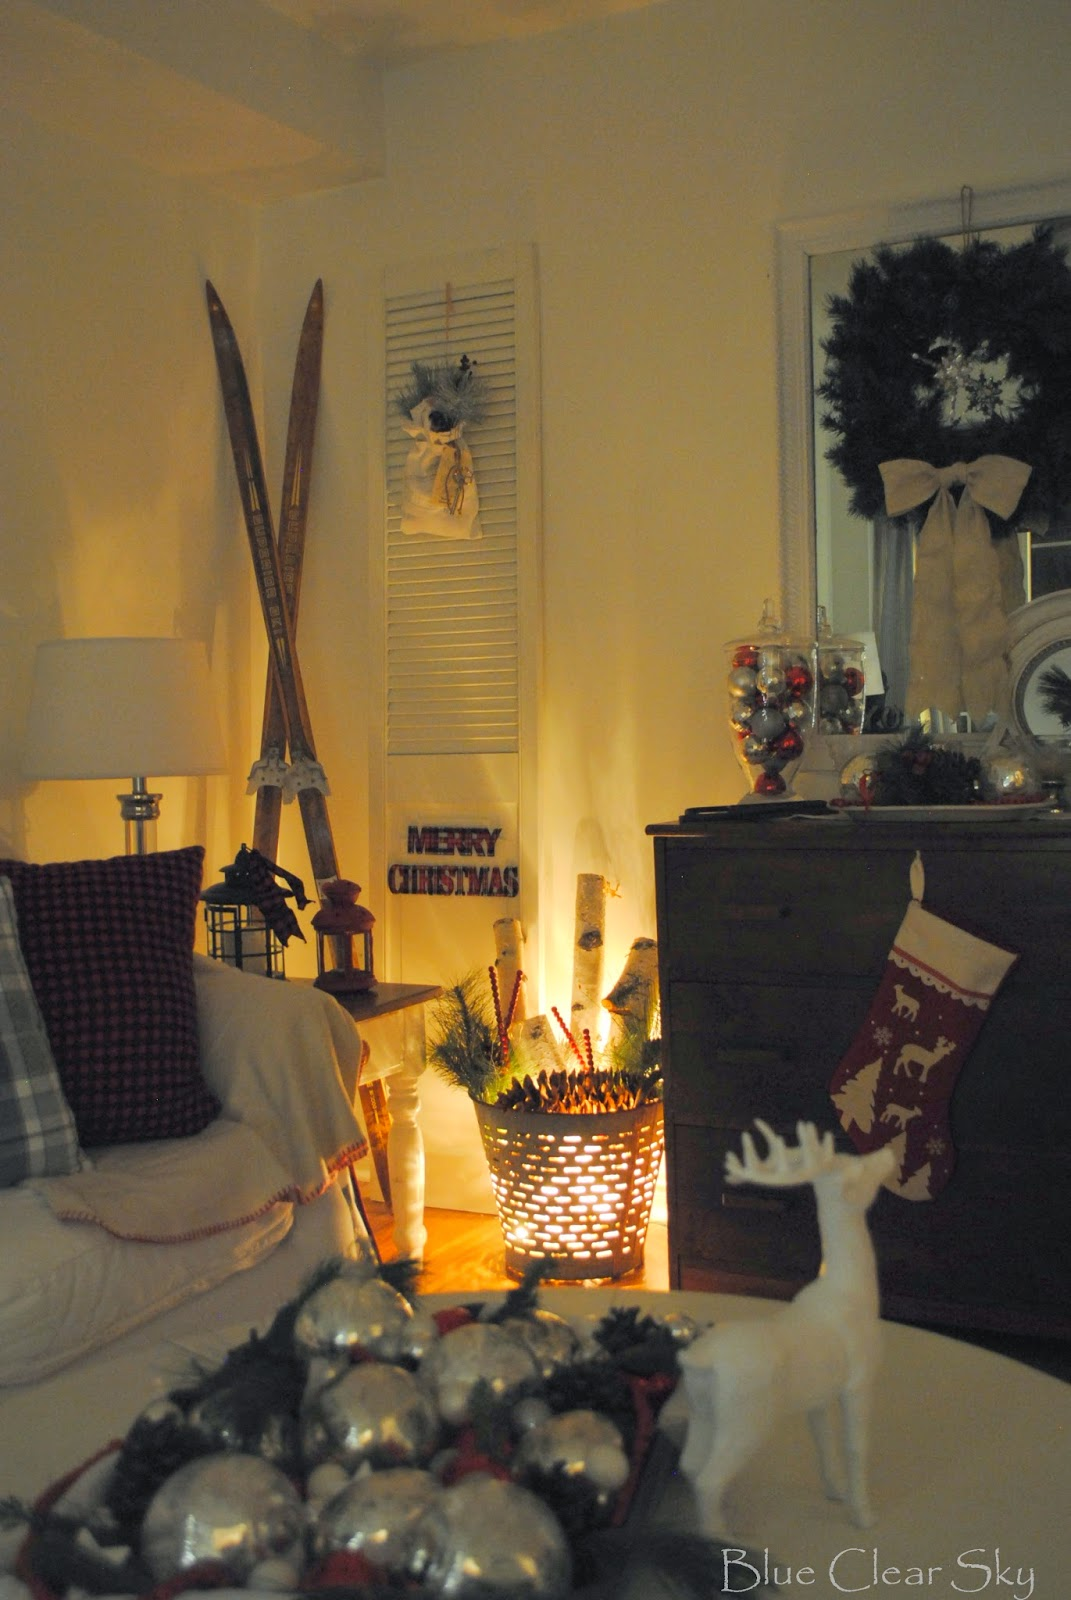 This Year I Decorated Our Home With A Cozy Northern Cabin Feel. Rustic And  Natural With Lots Of Neutrals And Greenery. Red, White, Black And Grey With  ... Part 82